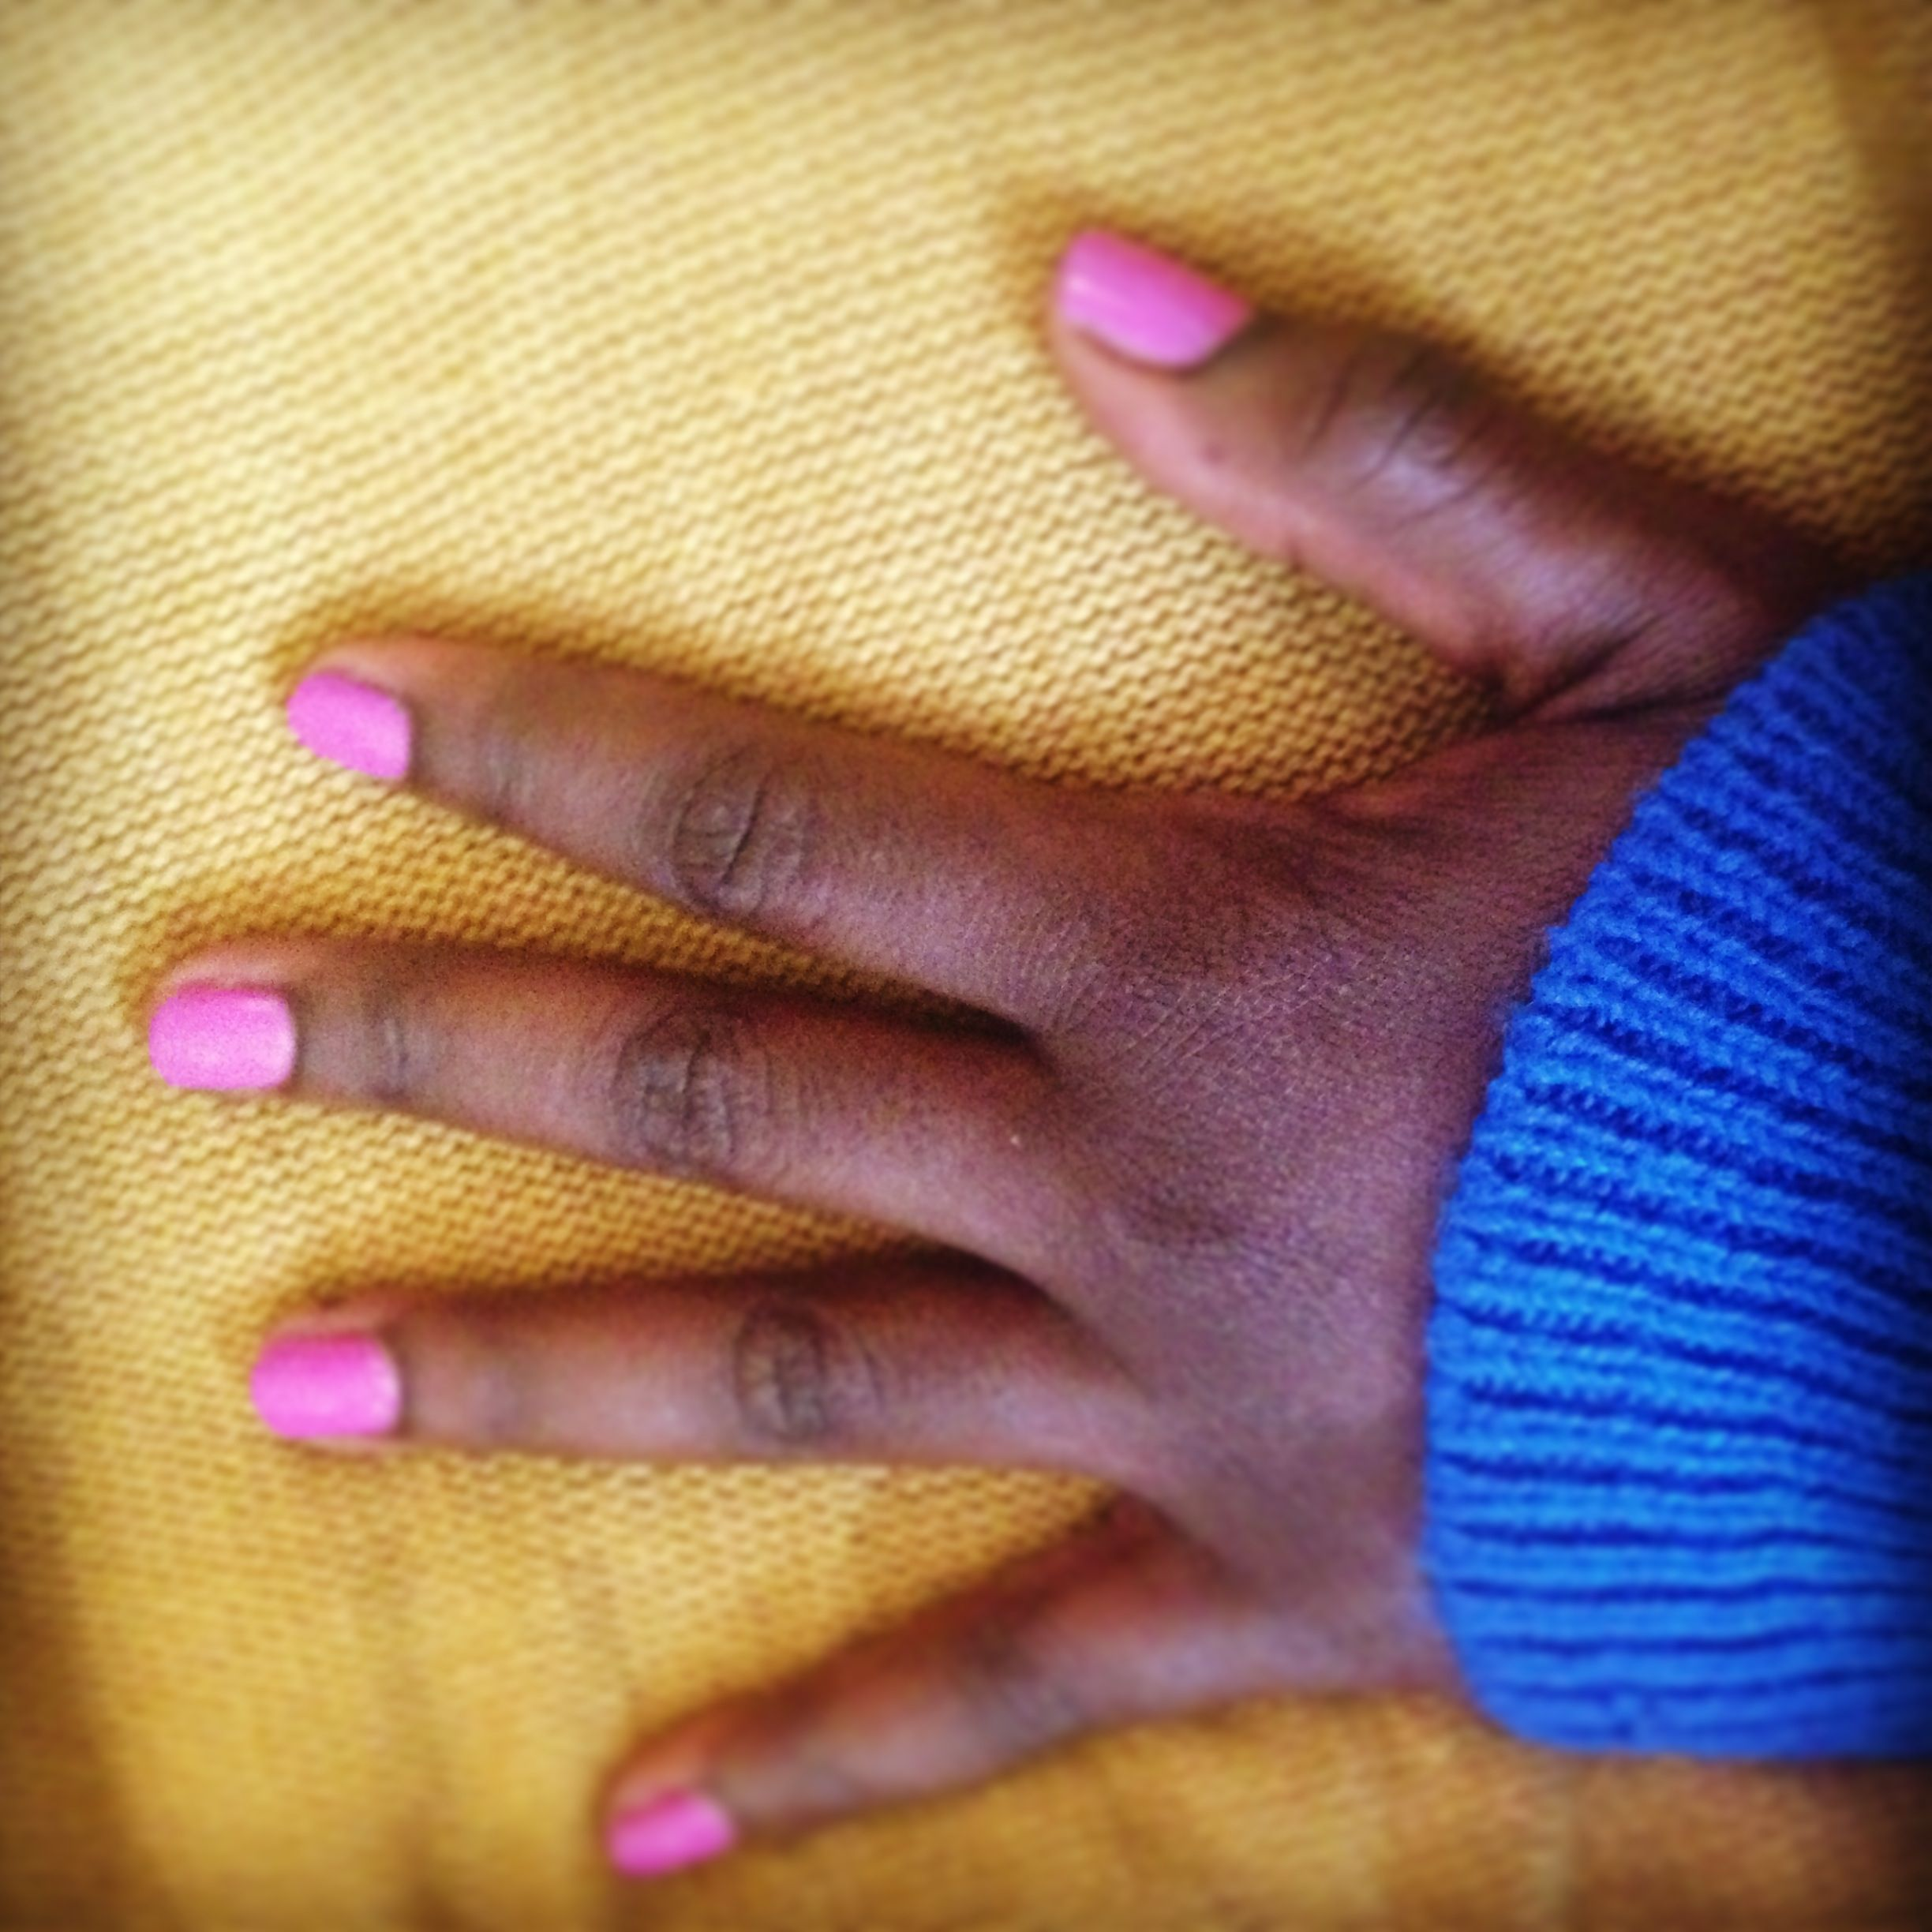 As a dark skinned girl I don't do bright pink, I feel so brave right now || Yes, I love this!